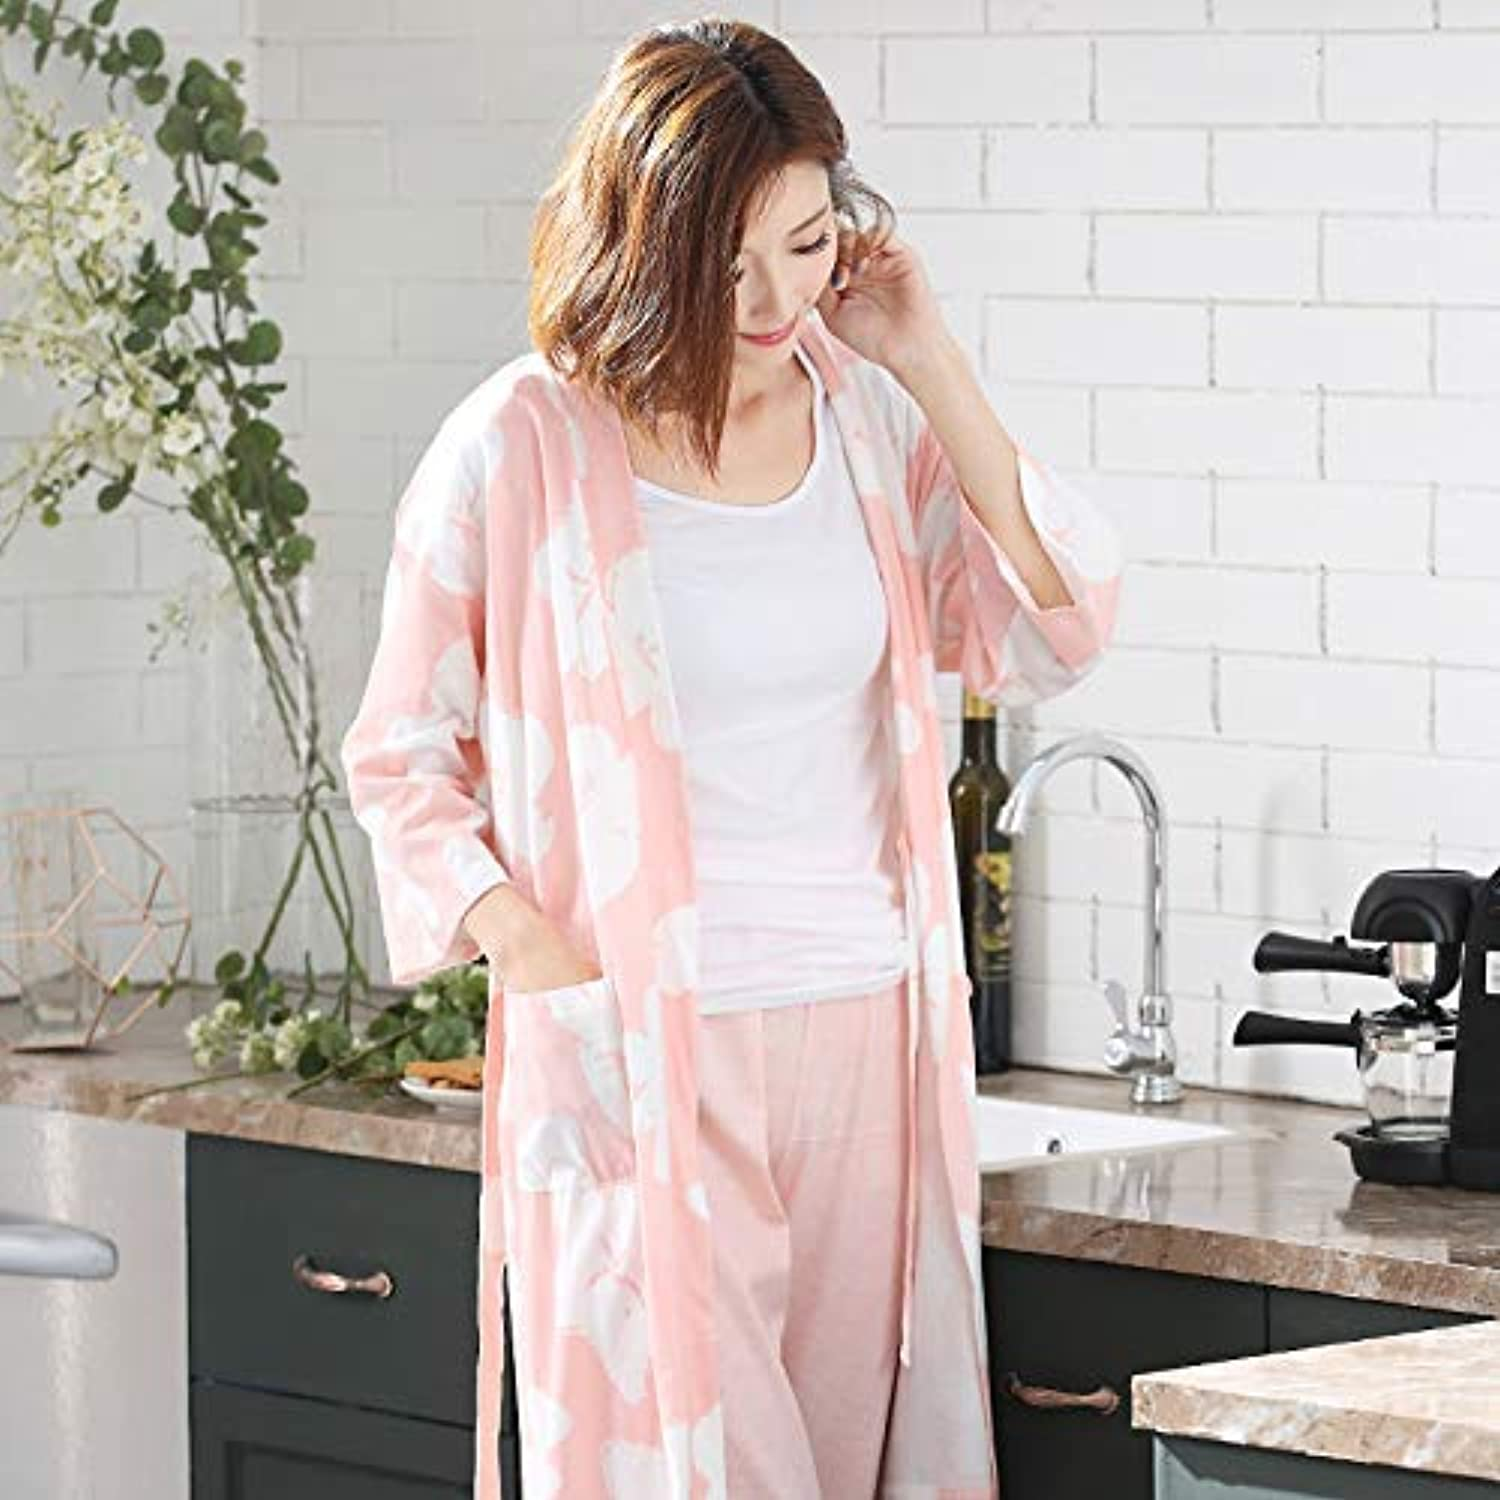 Cute Pajamas Pajamas Ladies Summer Thin Section SevenPoint Sleeve Trousers Modal Home Service Spring and Autumn Long Paragraph Robe Suit (color   Pink, Size   XXXL) Sexy Sleepwear